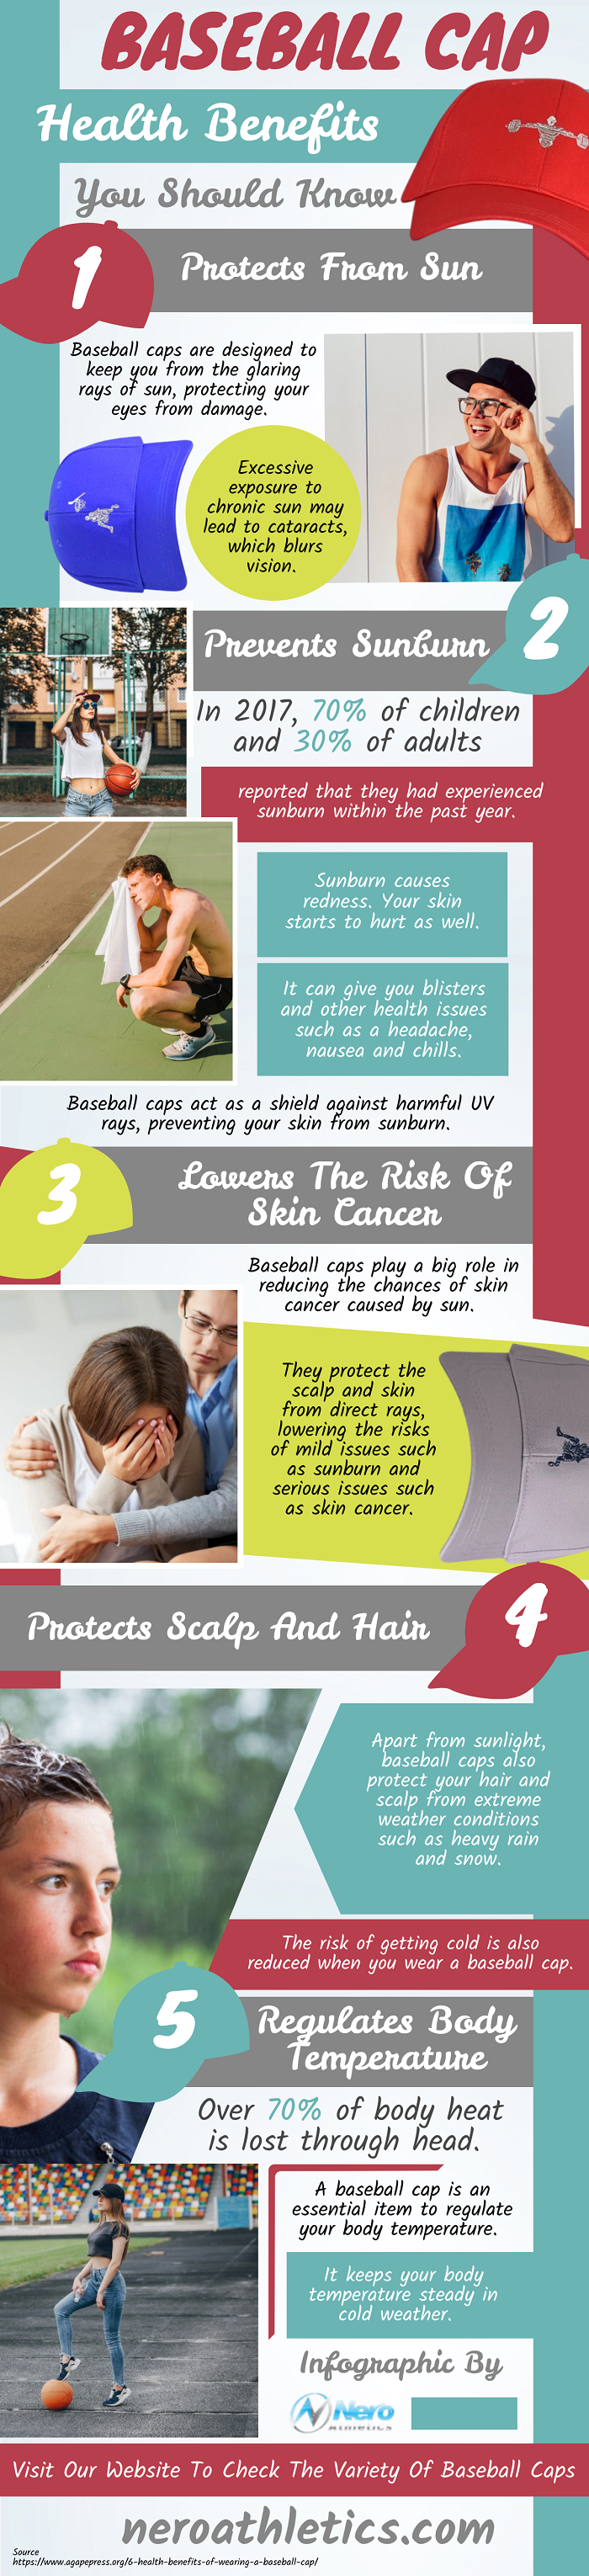 Baseball Cap Health Benefits You Should Know